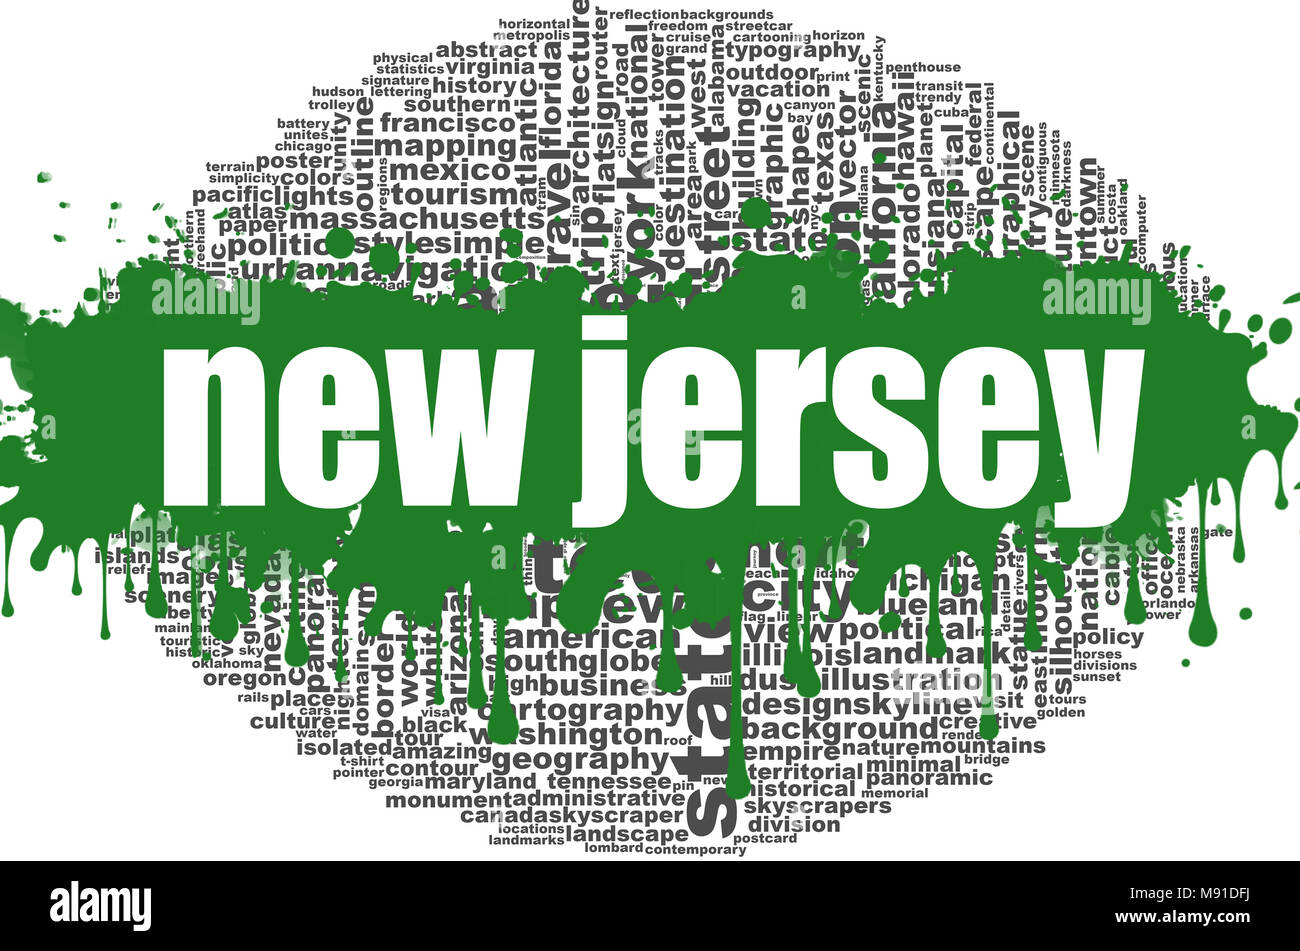 New Jersey Word Cloud Design Creative Illustration Of Idea Word